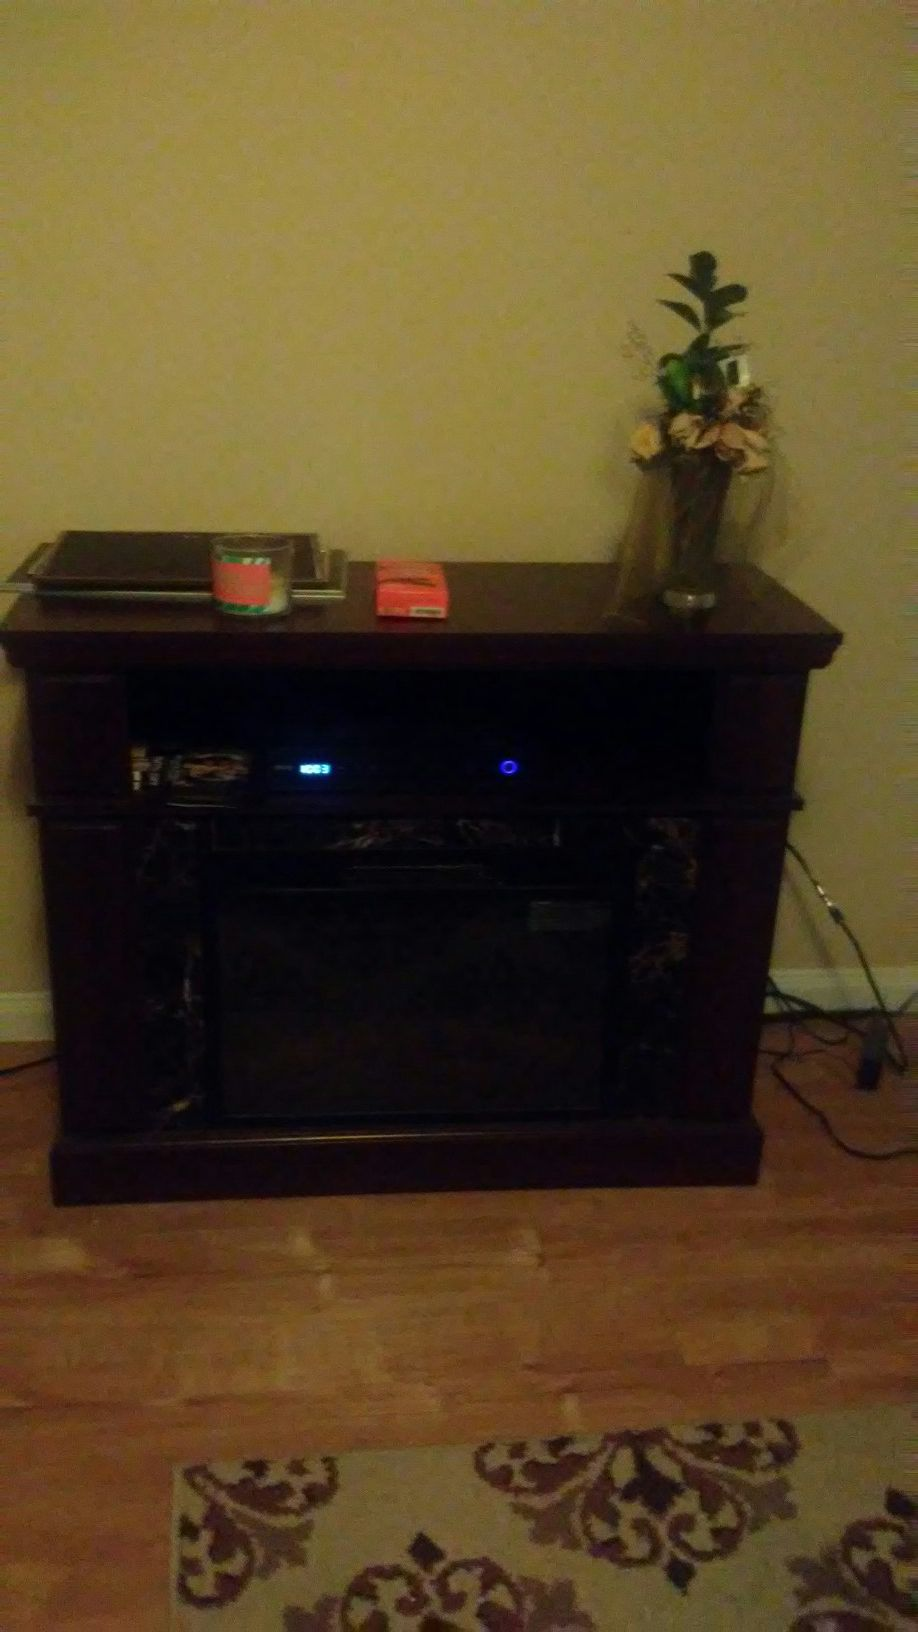 50 inch TVStand/Fireplace